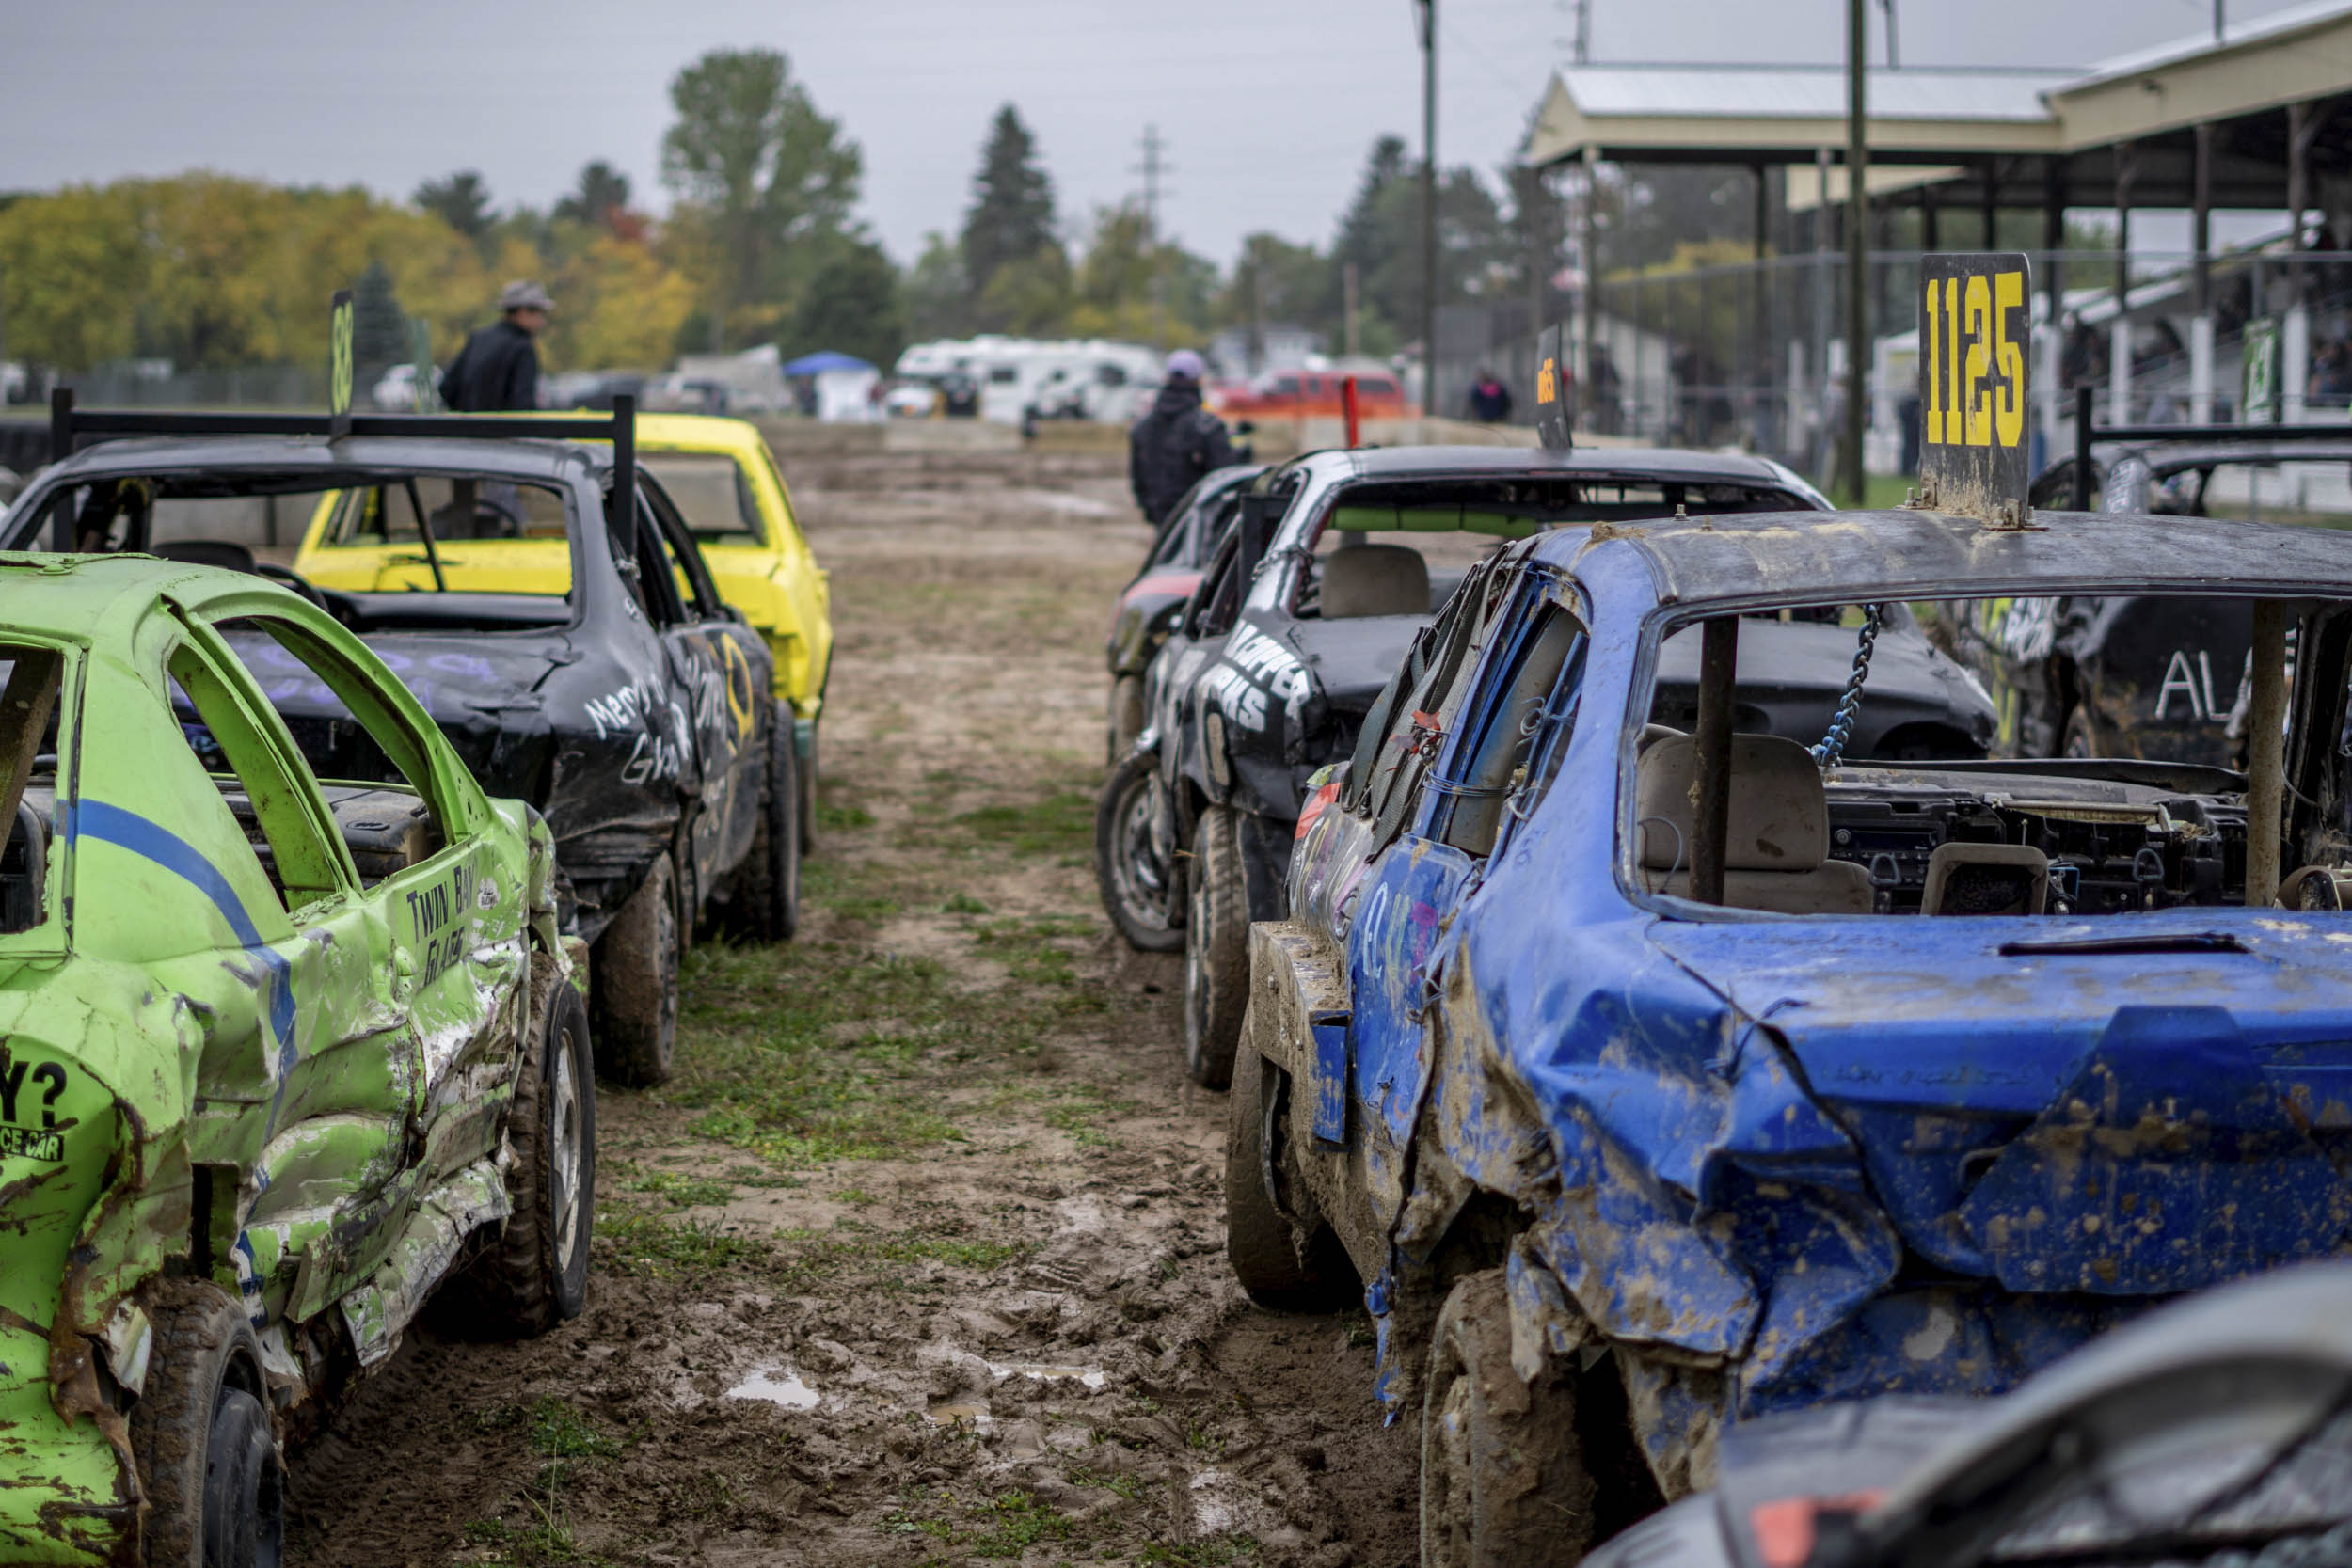 demolition derby cars ready to go on the track